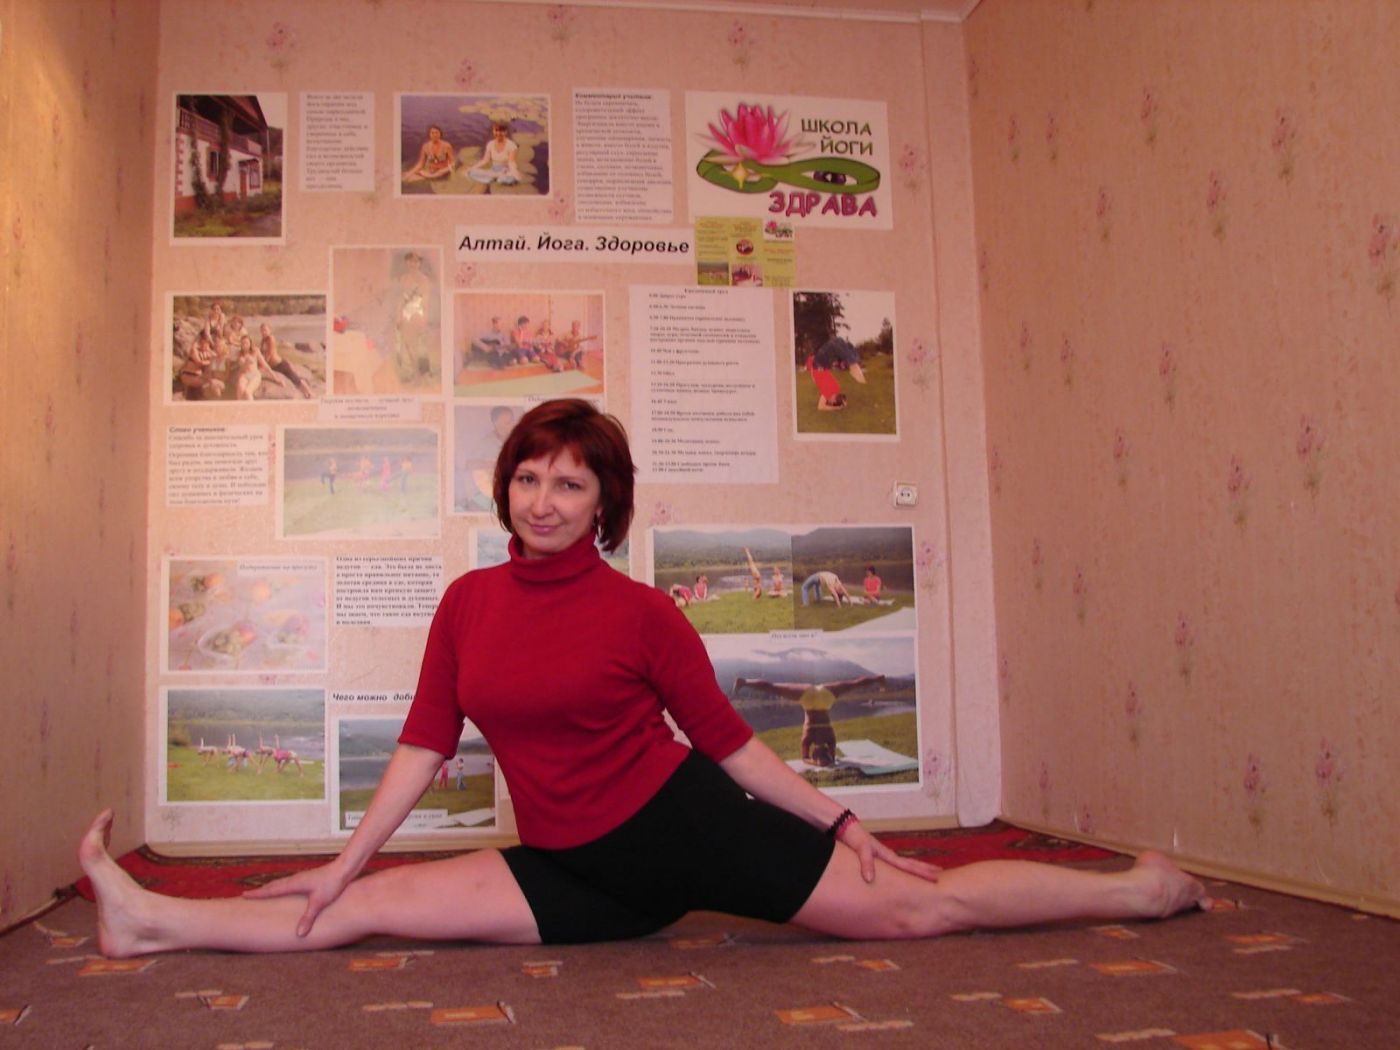 Herniated disk. Complete recovery through yoga